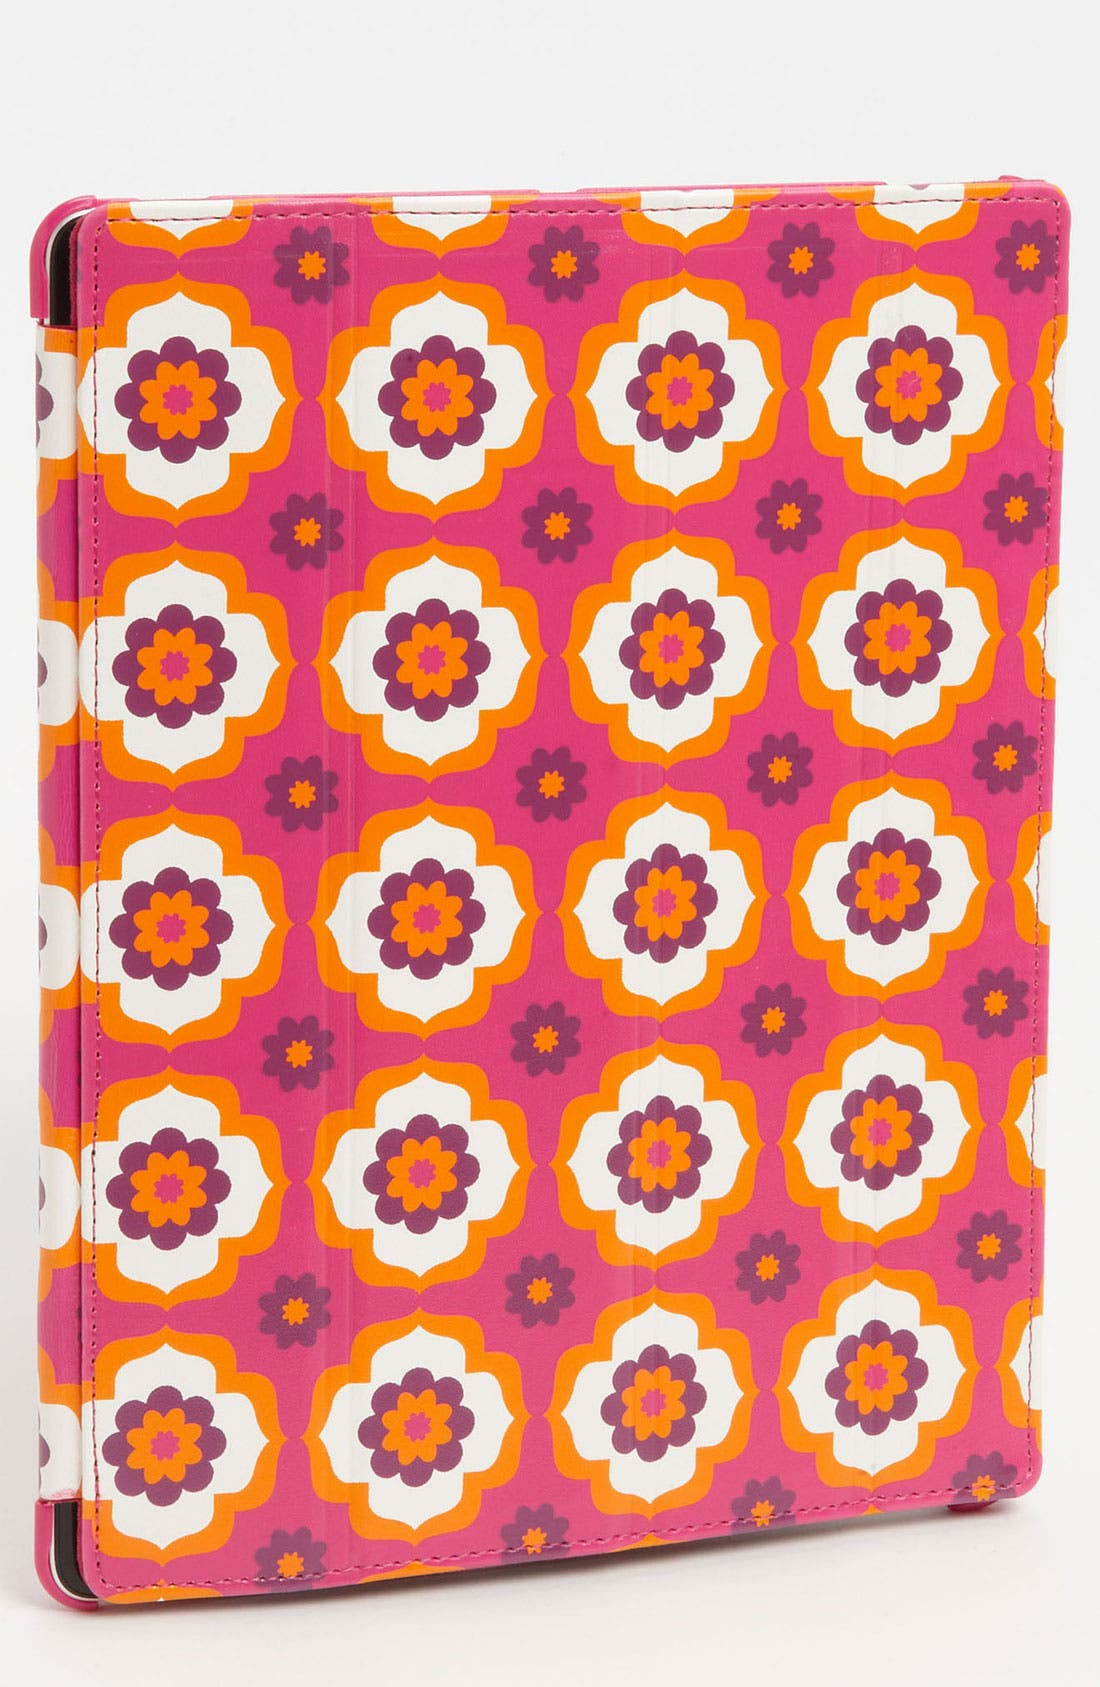 Alternate Image 1 Selected - Jonathan Adler 'Retro Floral' iPad 2 Case